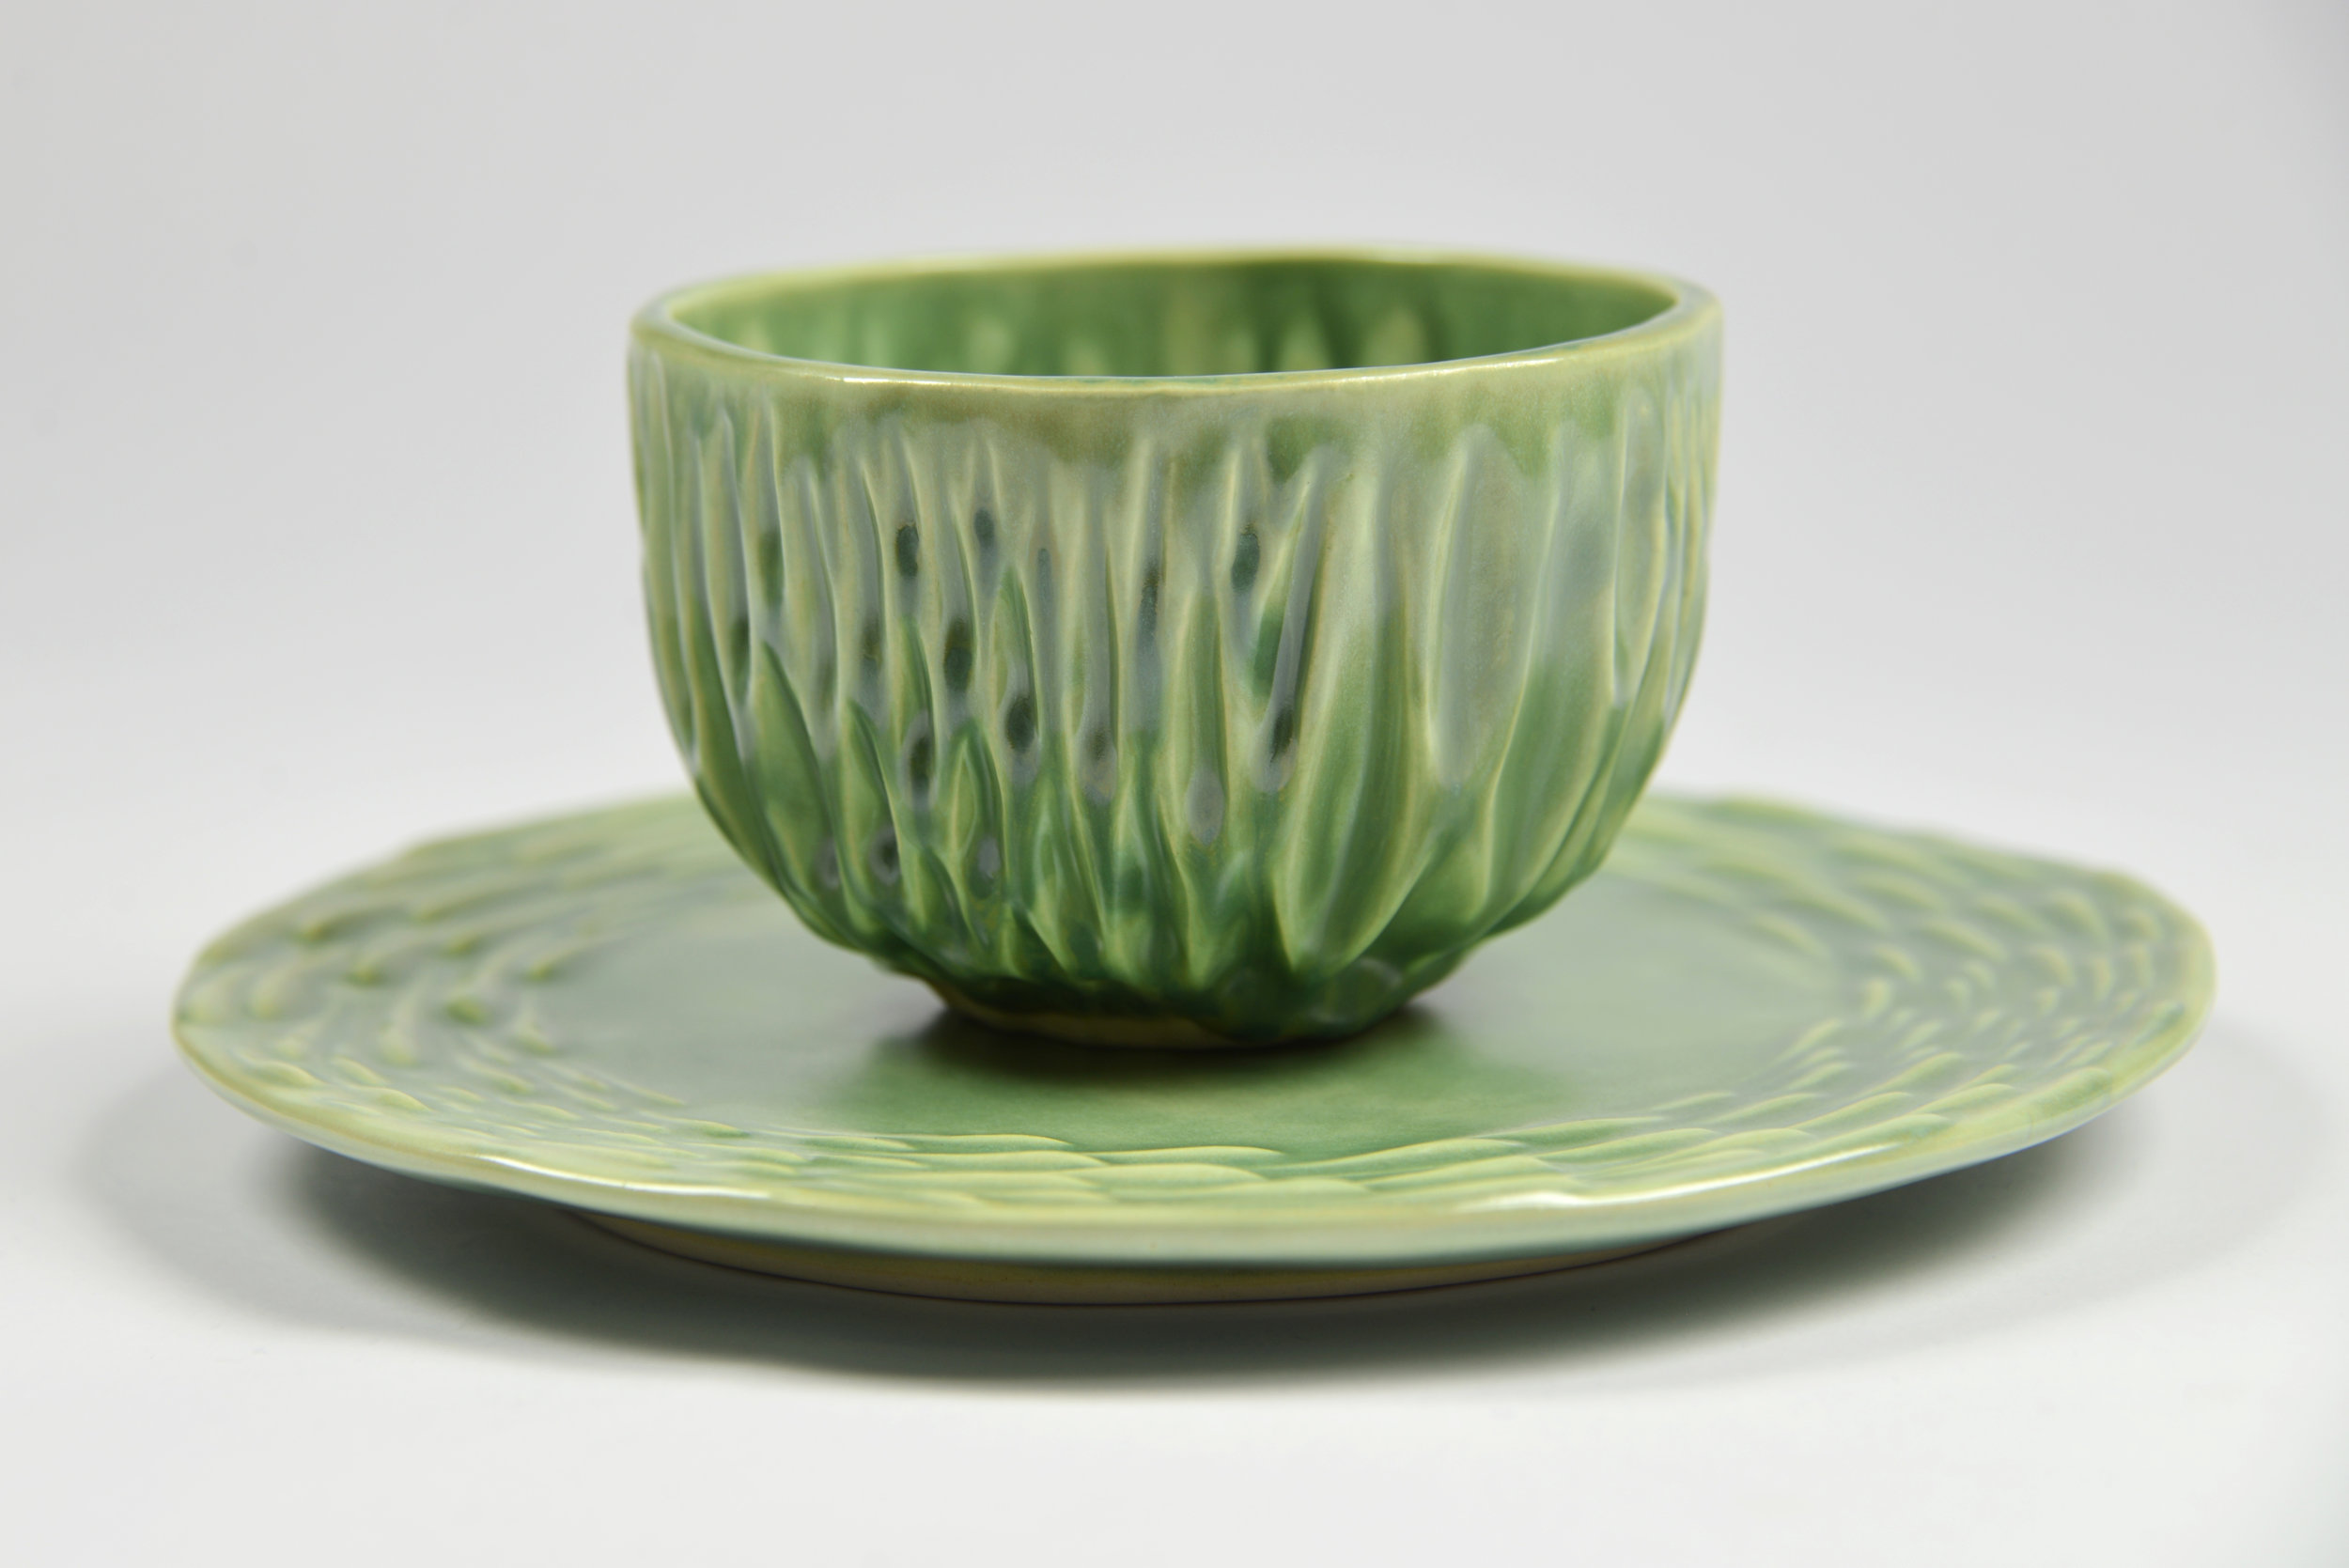 Textured Plate and Bowl Set (2017)